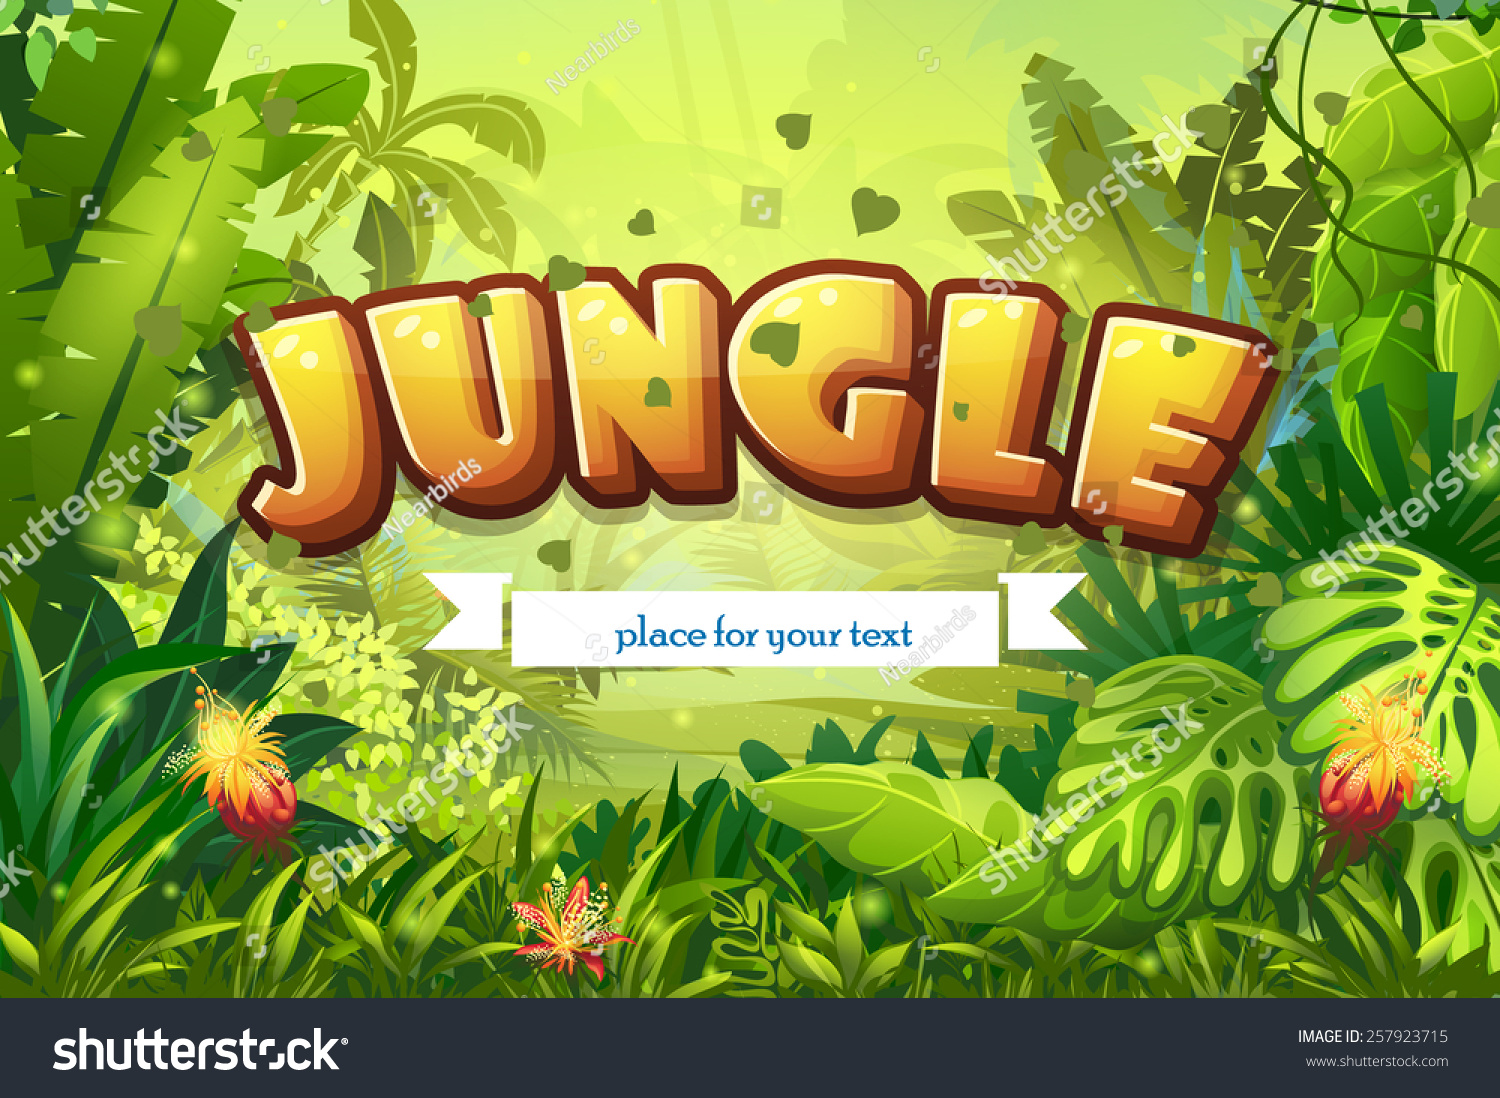 illustration cartoon jungle with inscription and ribbon for your text